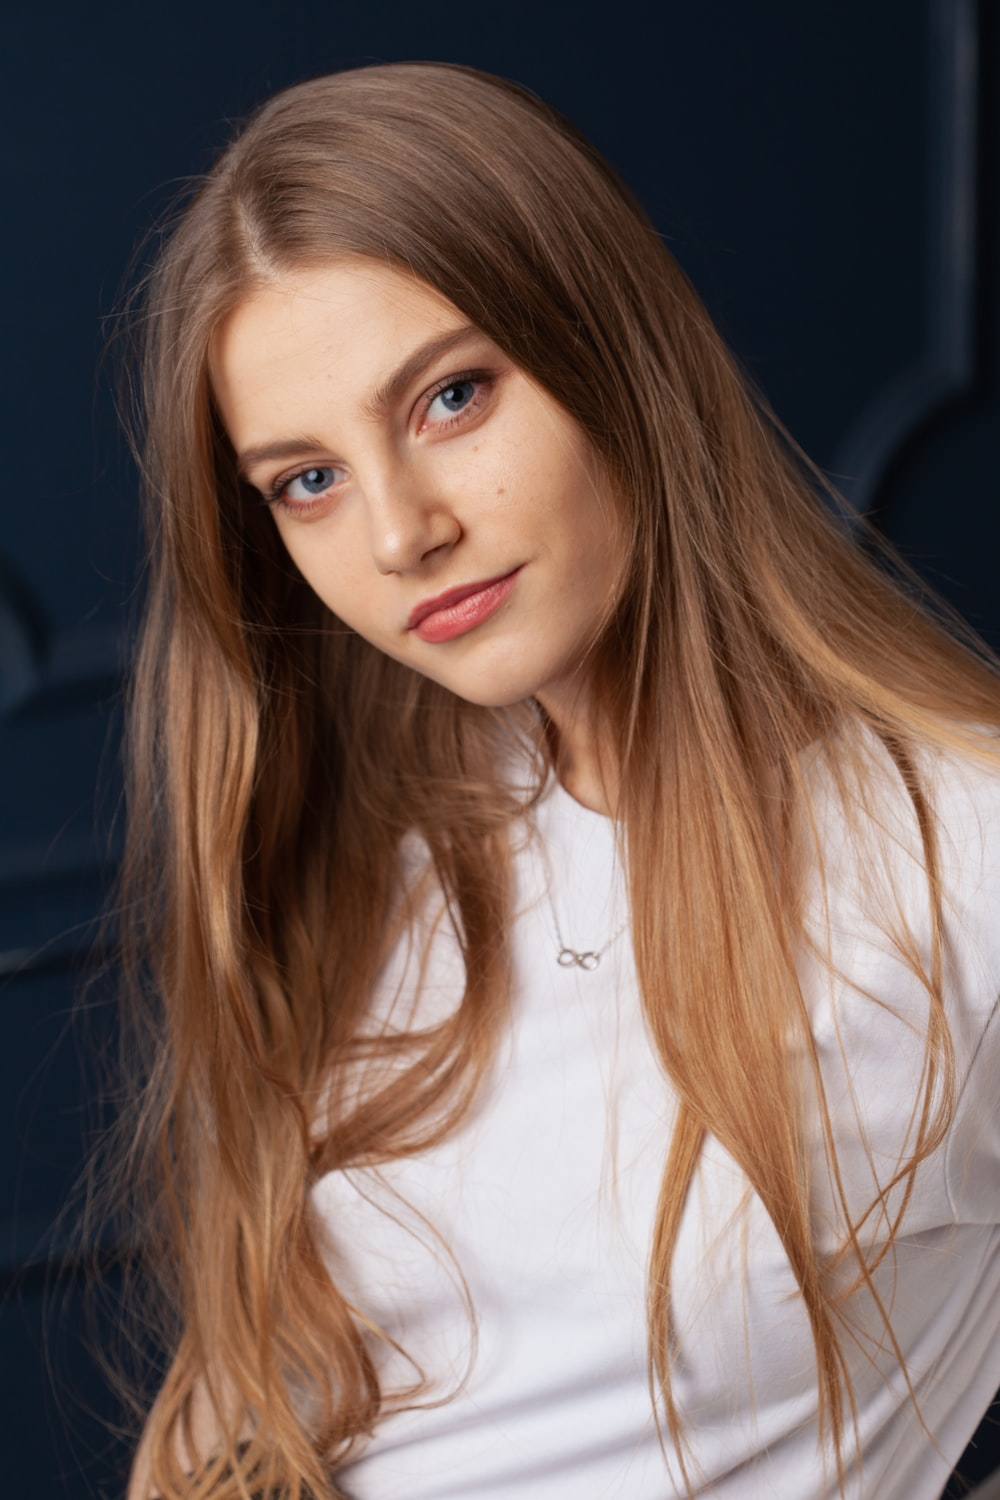 woman in white button up shirt